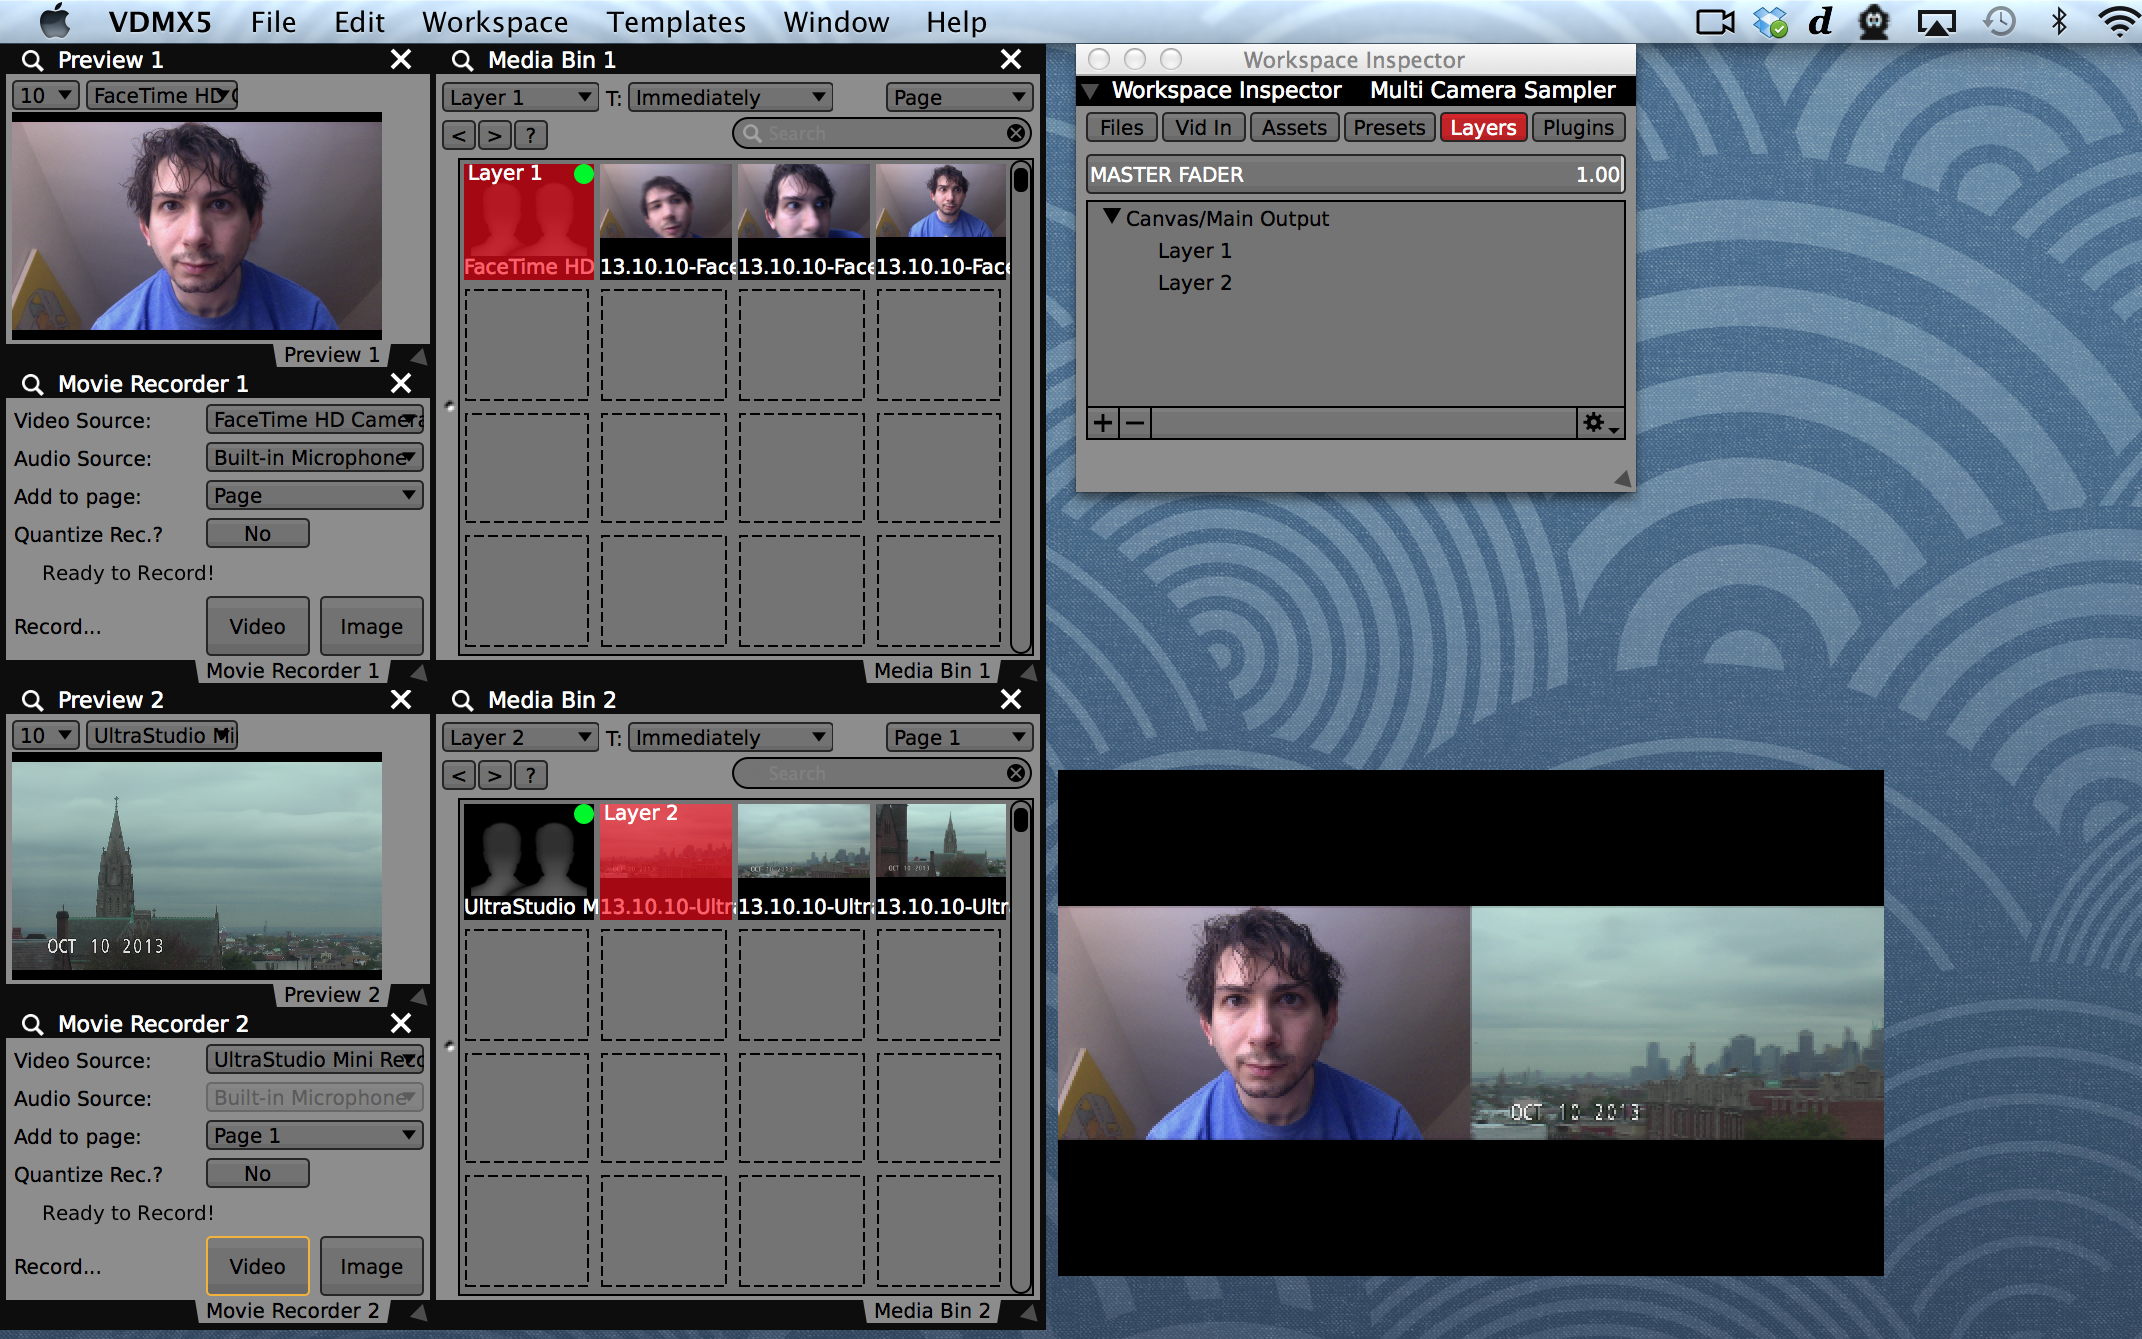 Customize the layout of the preview, recorder, and media bin for each input.